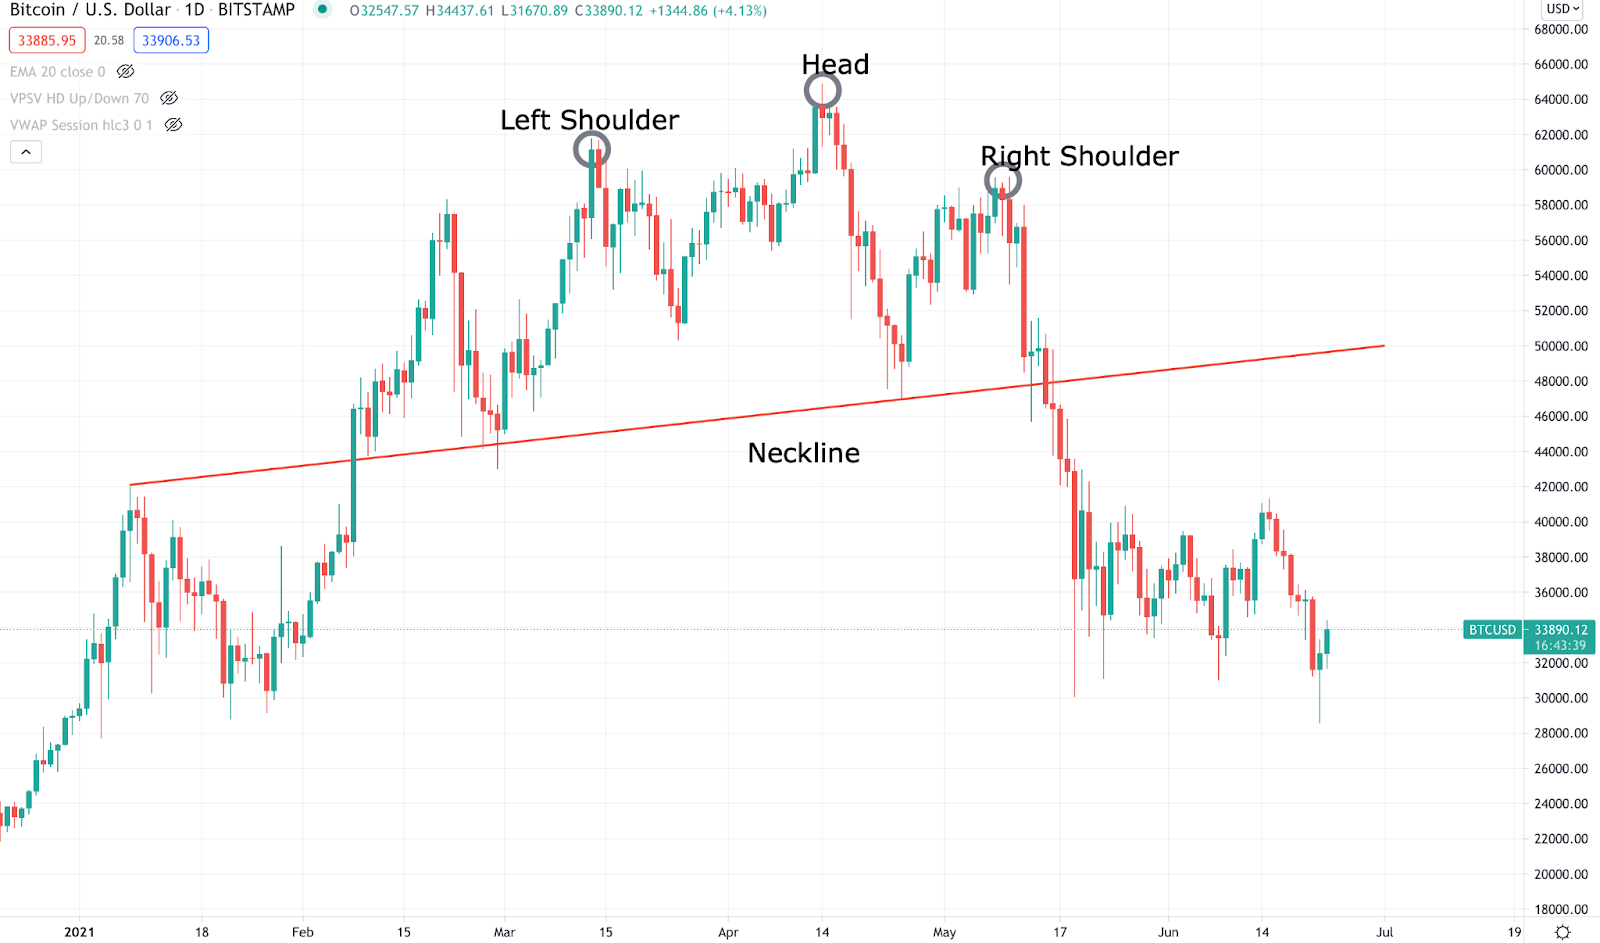 A sample of head and shoulder candlestick pattern.